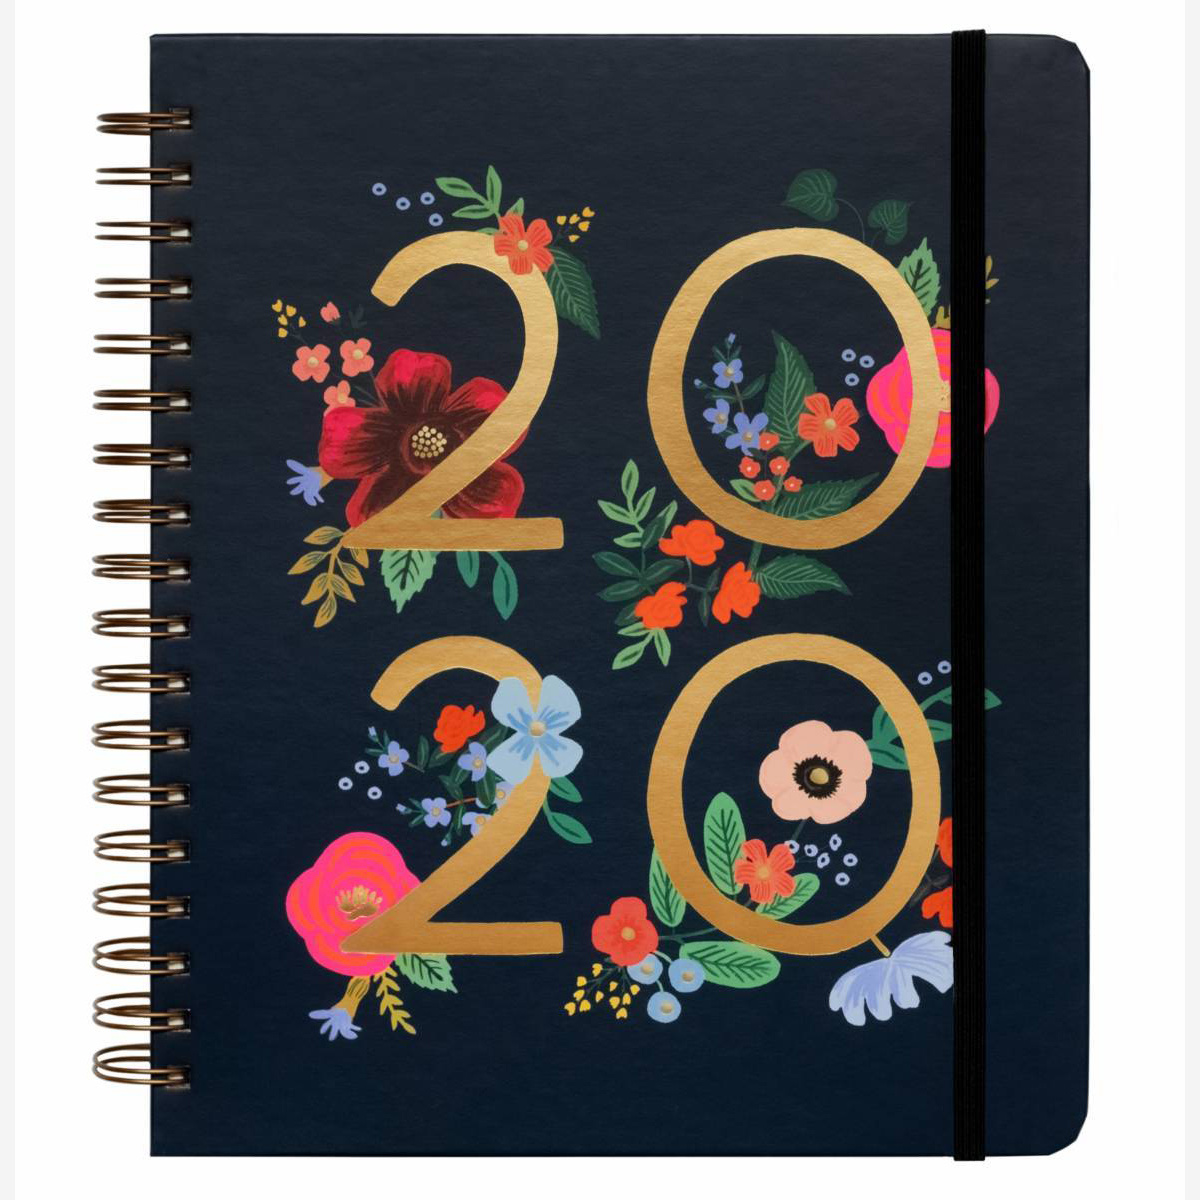 Rifle Paper Co. 2020 Wild Rose Spiral 17 Month Agenda